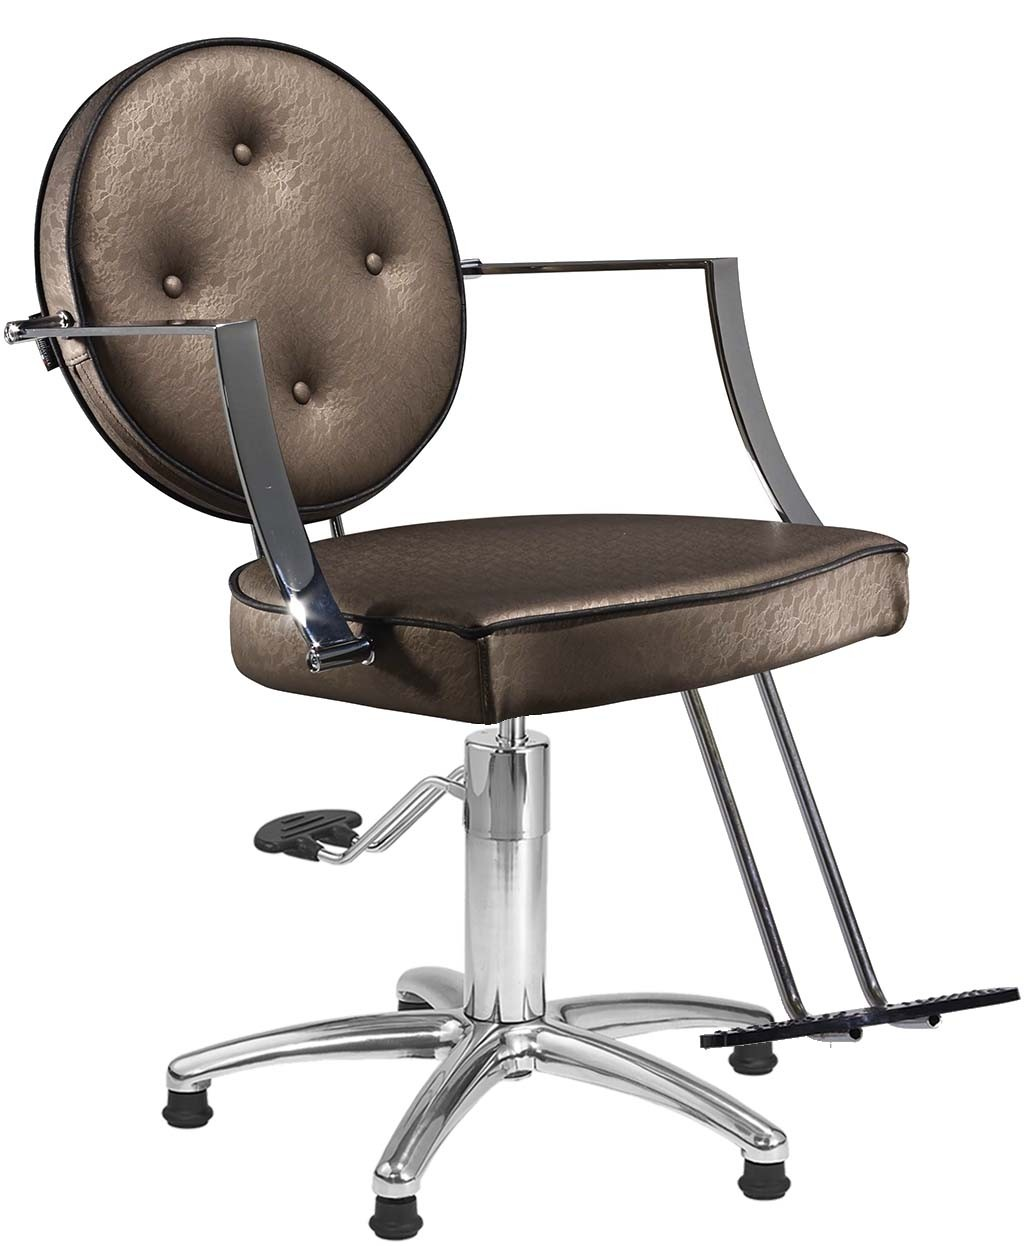 Salon Ambience CH-040 Camille Styling Chair